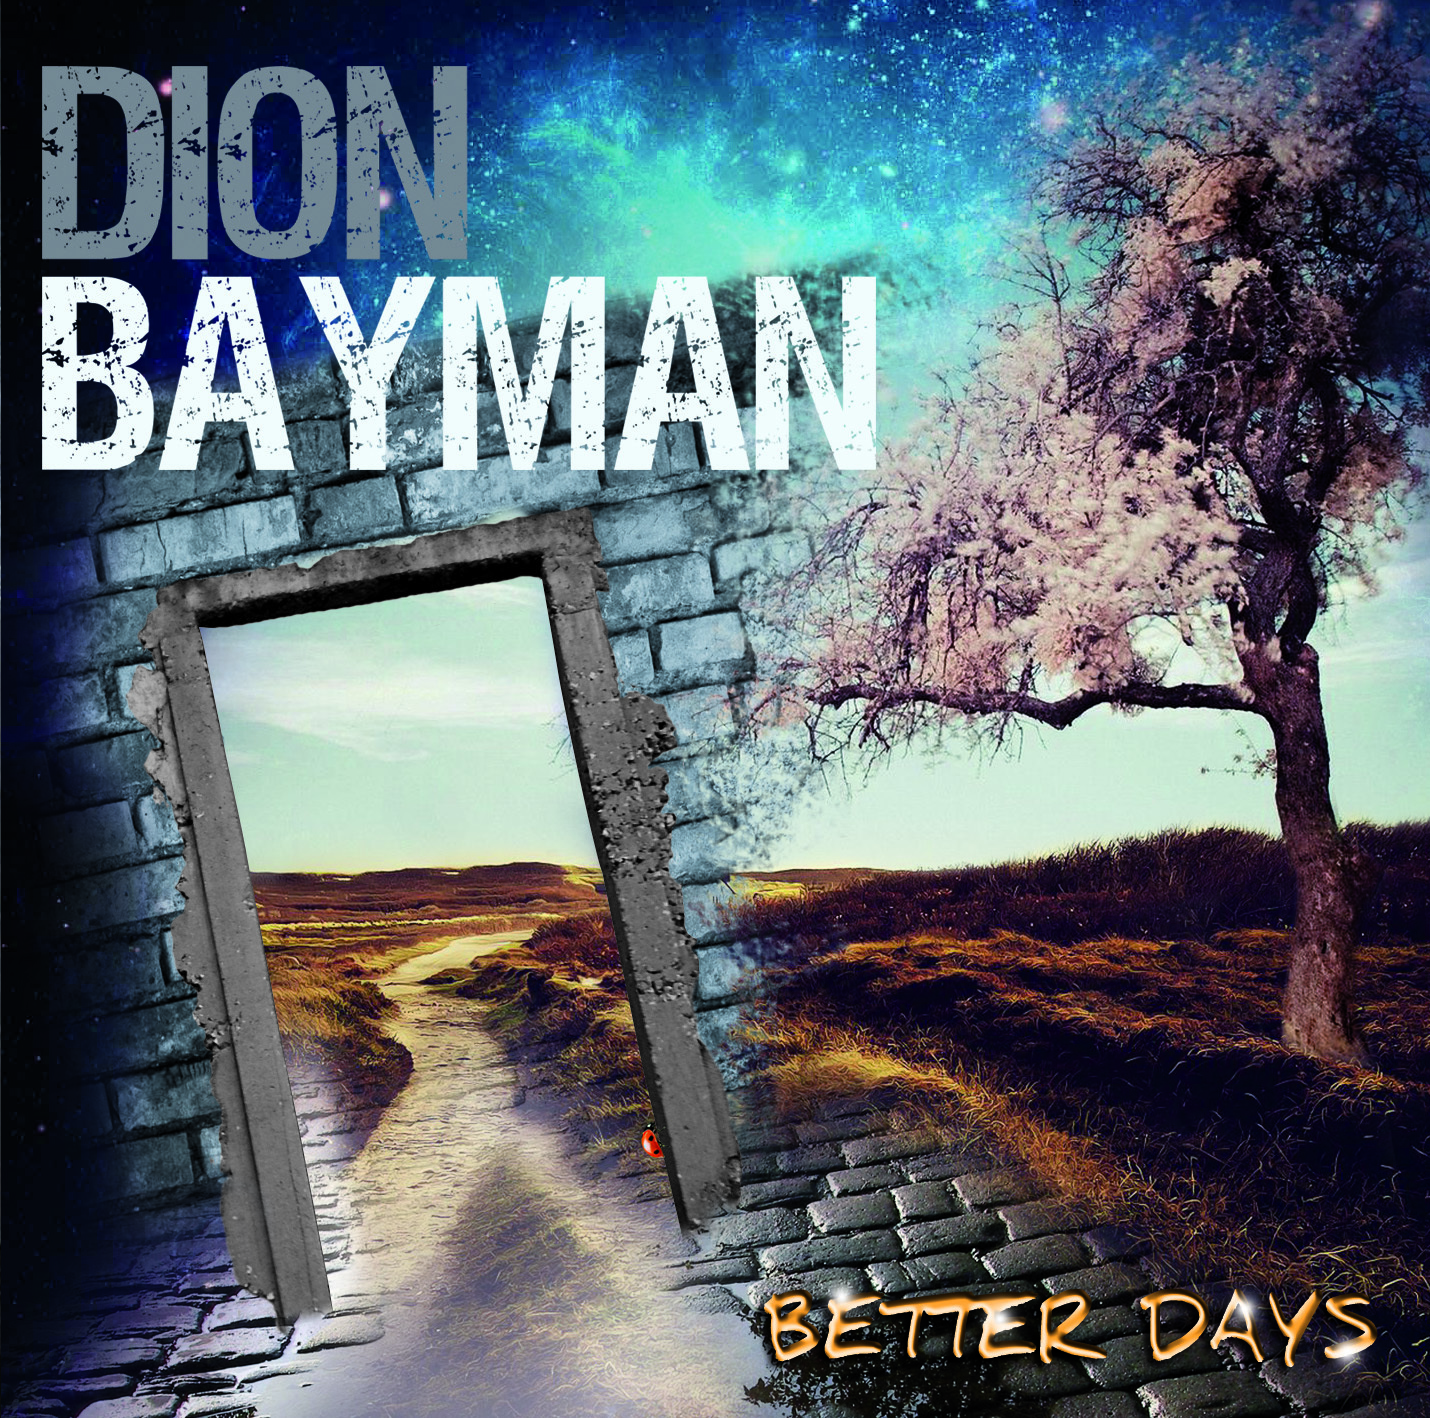 Dion Bayman - Better Days 0000010